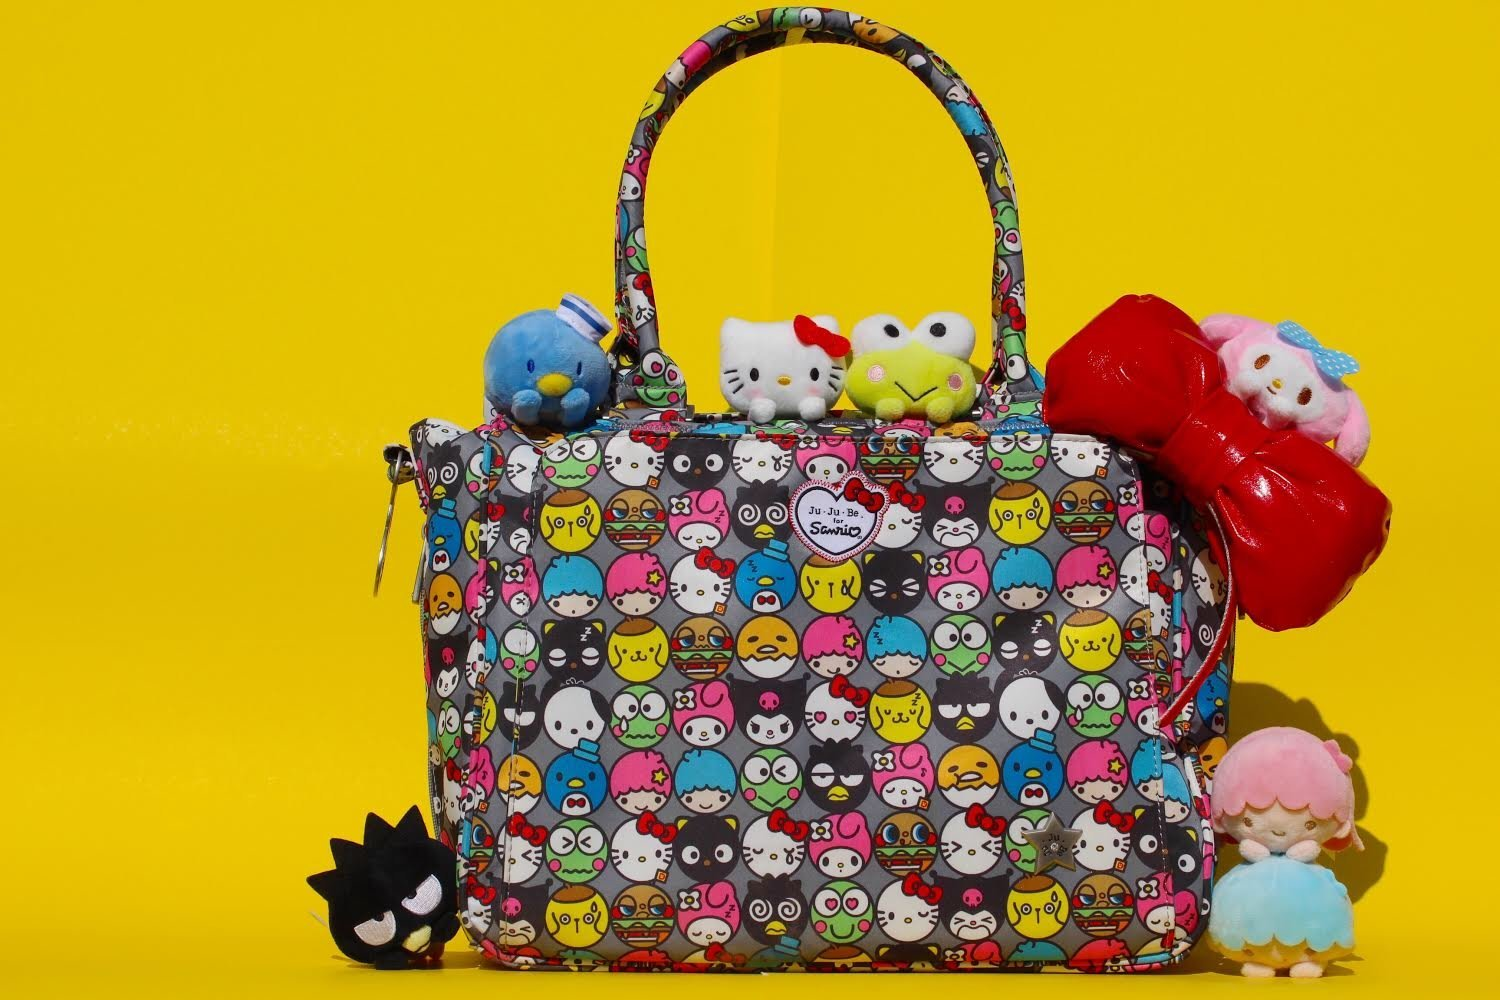 Ju Be Hello Kitty Out To Sea Collection Classy Jujube Friends Structured Handbag Diaper Bag Baby